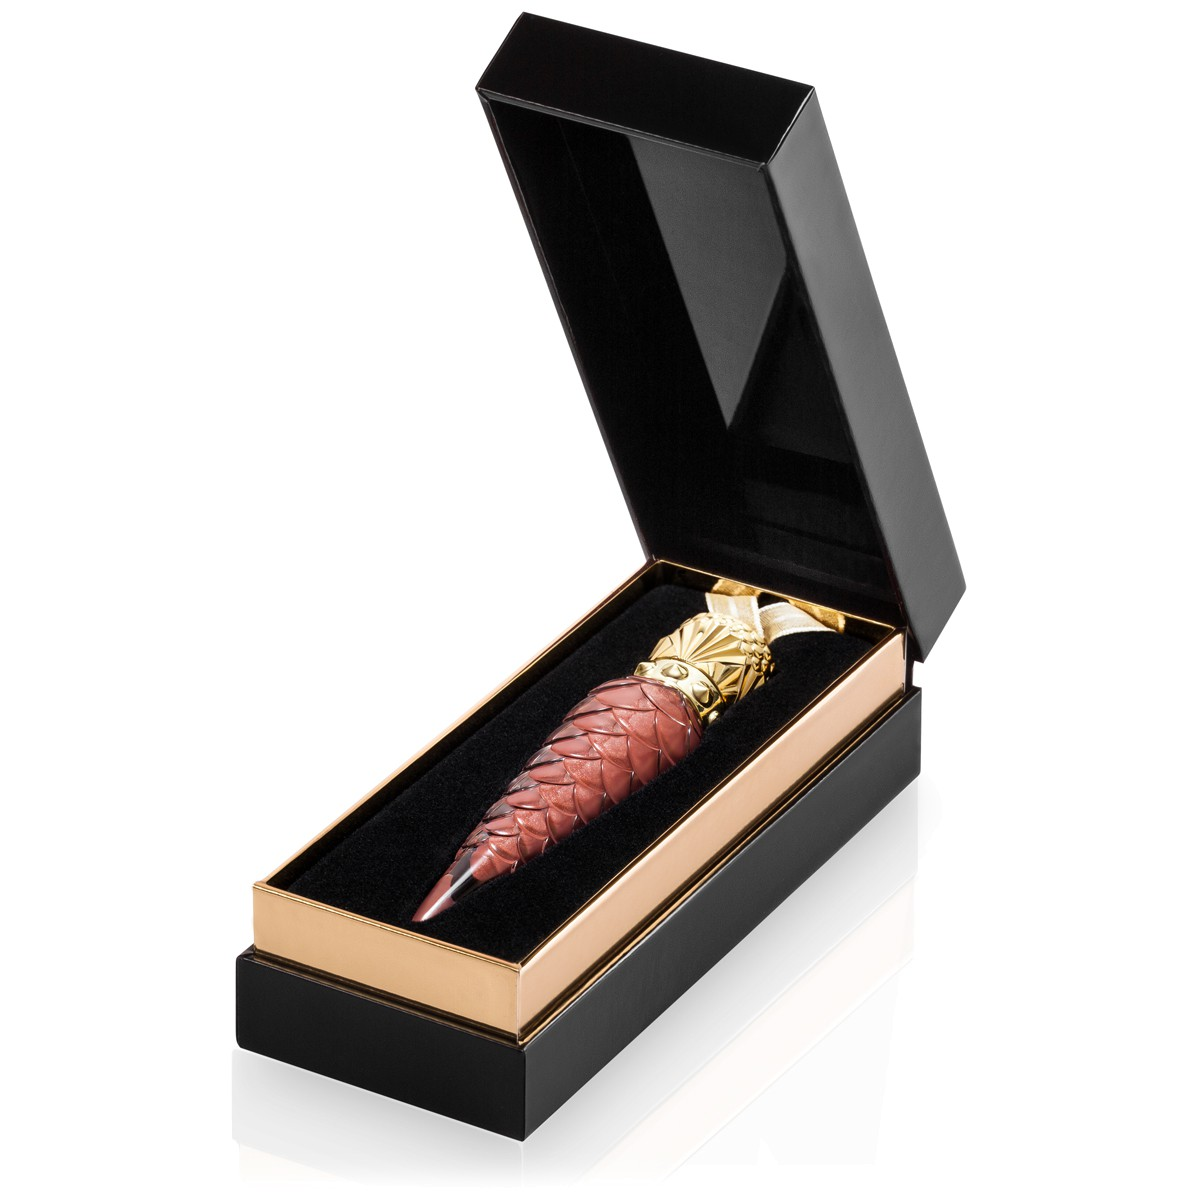 Beauty - Altareva Loubilaque Lip Lacquer - Christian Louboutin